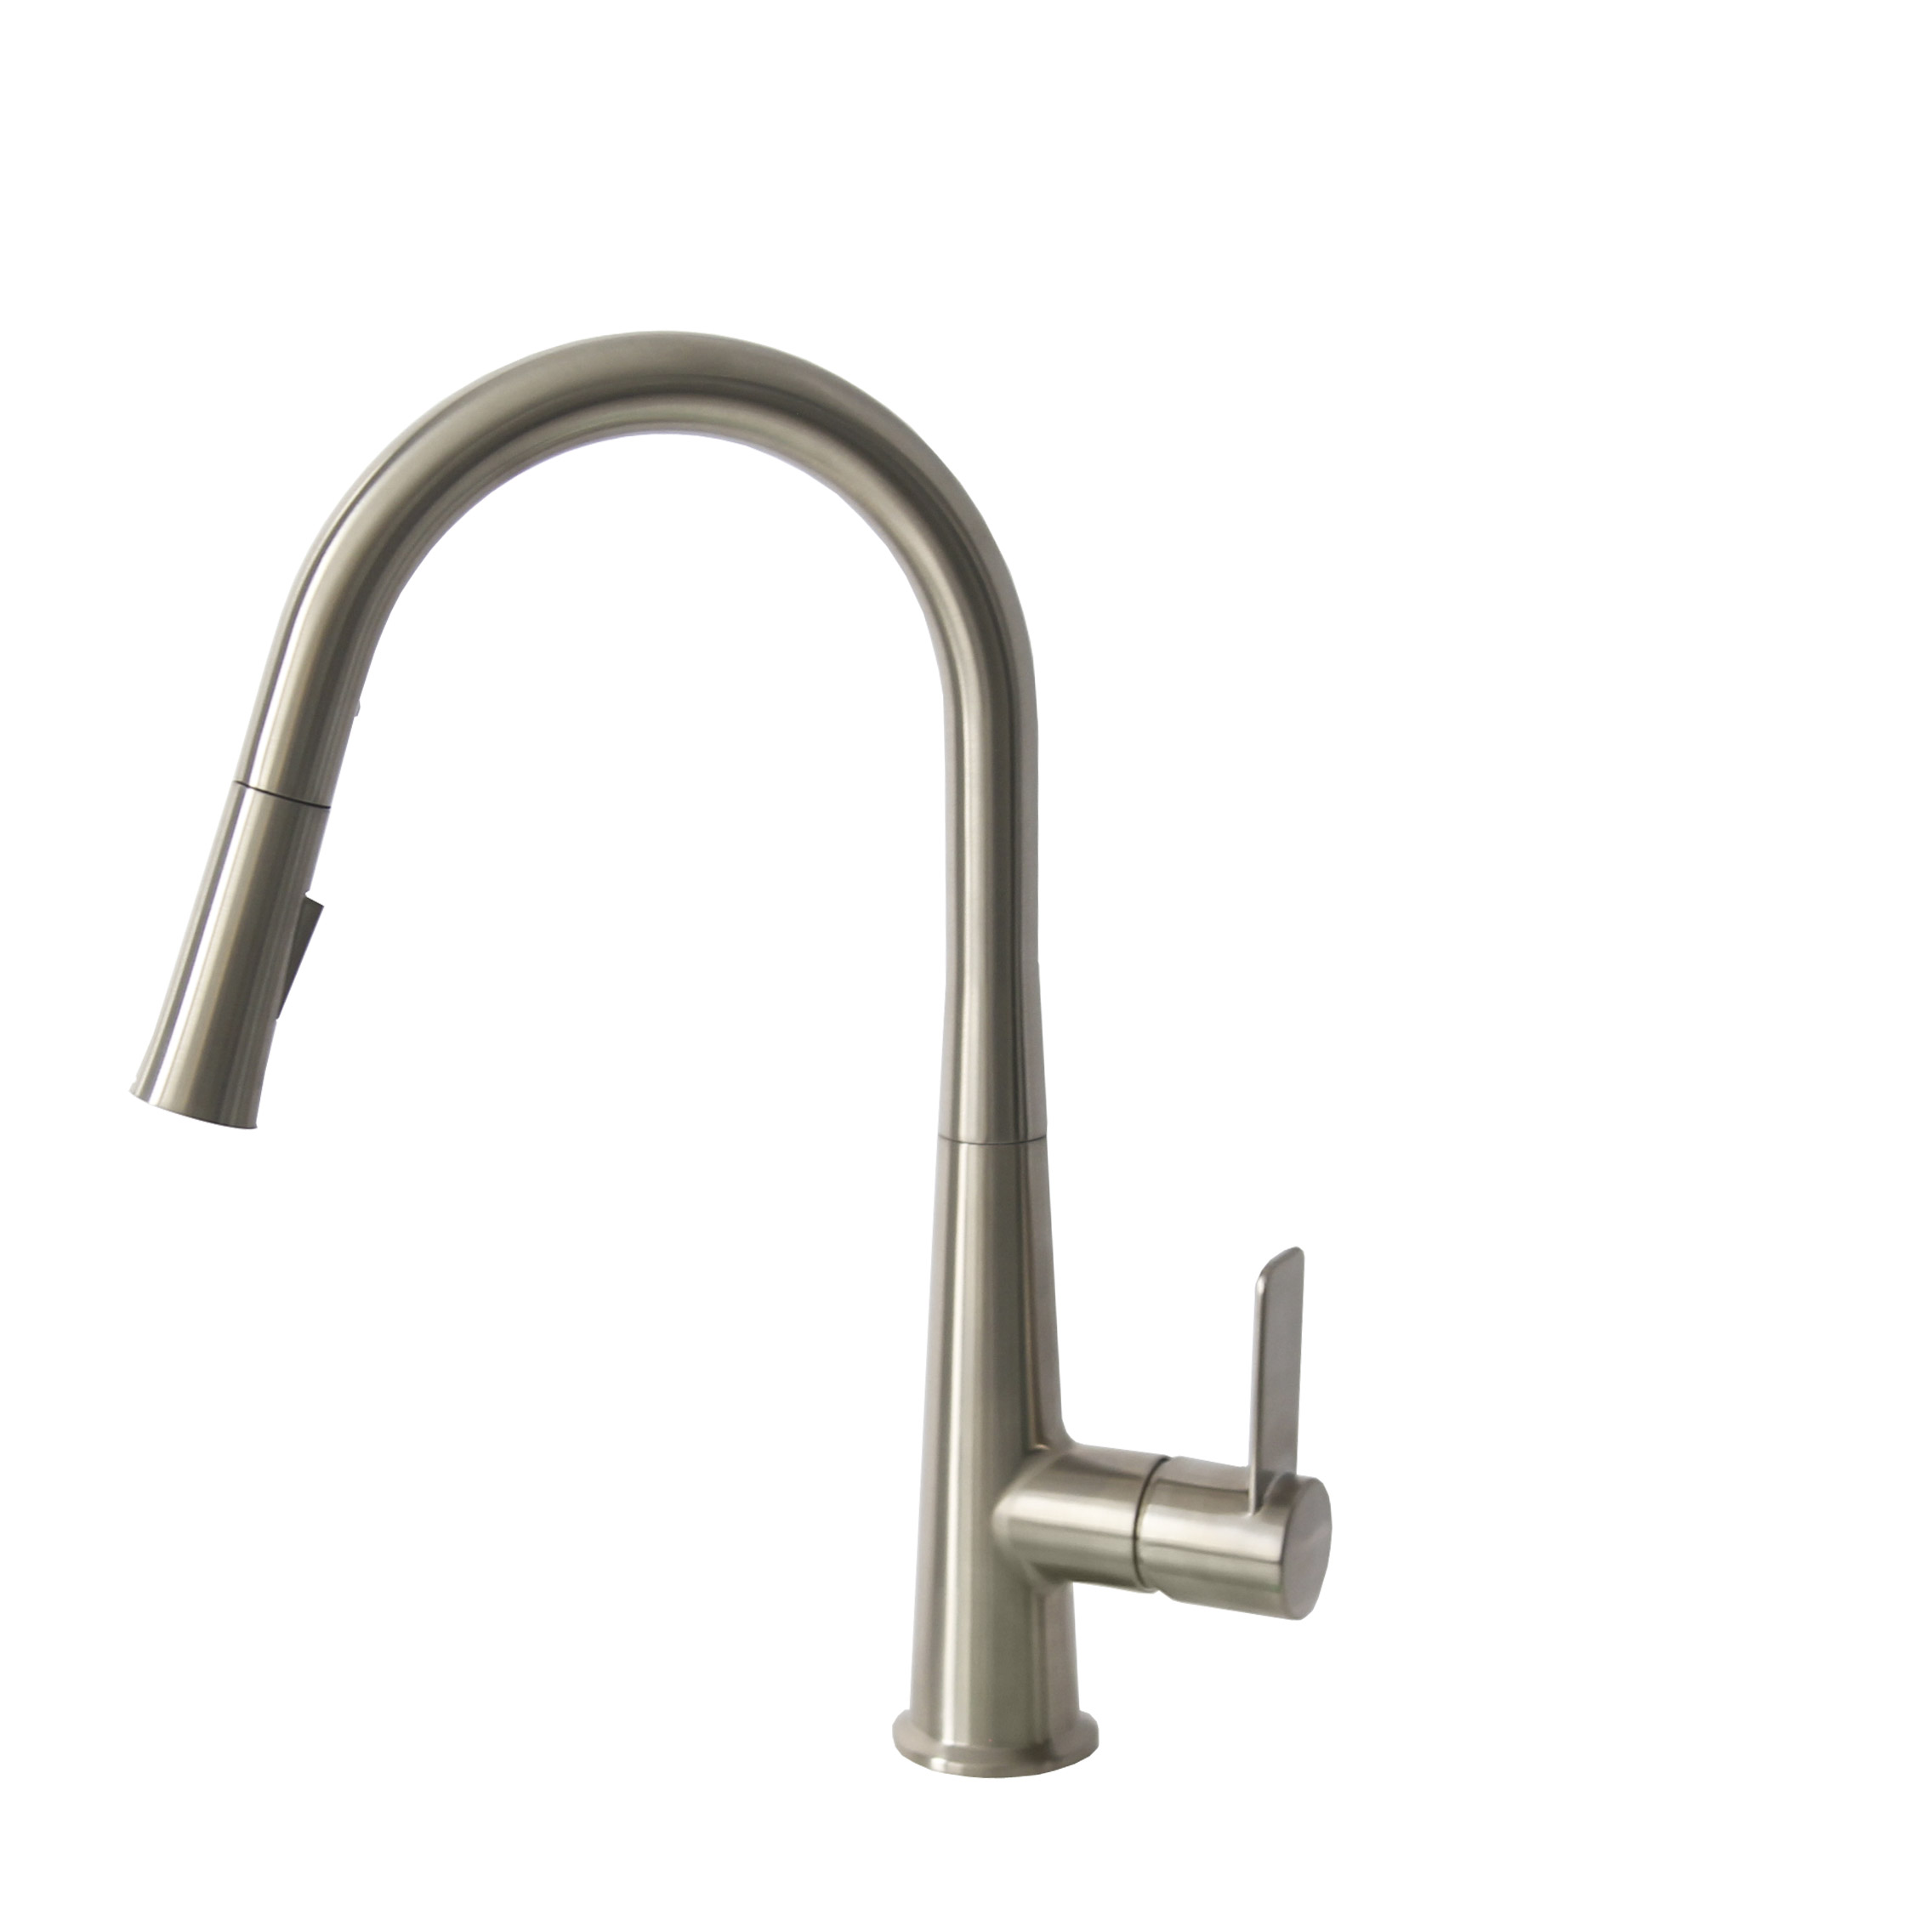 Stylish - K-135B  - Pull Down Single Handle Kitchen Faucet - Brushed Nickel